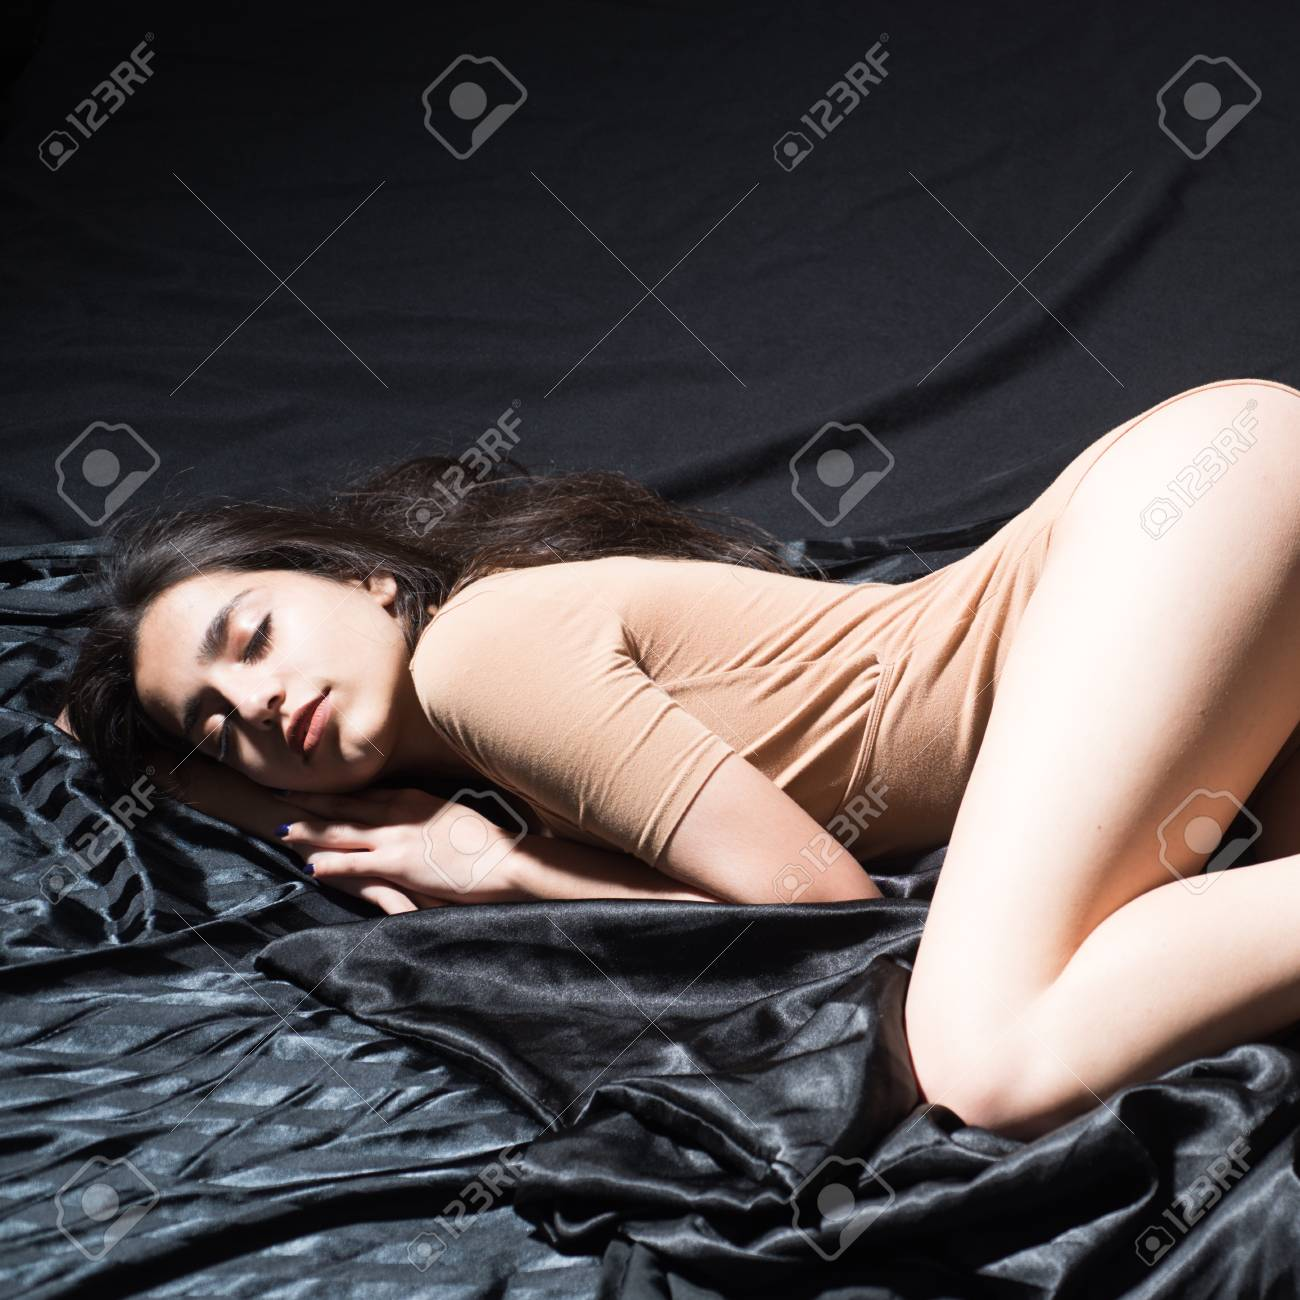 Stock Photo Young Female Lying In Cozy Bed Sexy Girl In Beige Body Suit On Black Background Sensual Girl Falling Asleep Erotic Fantasy Concept